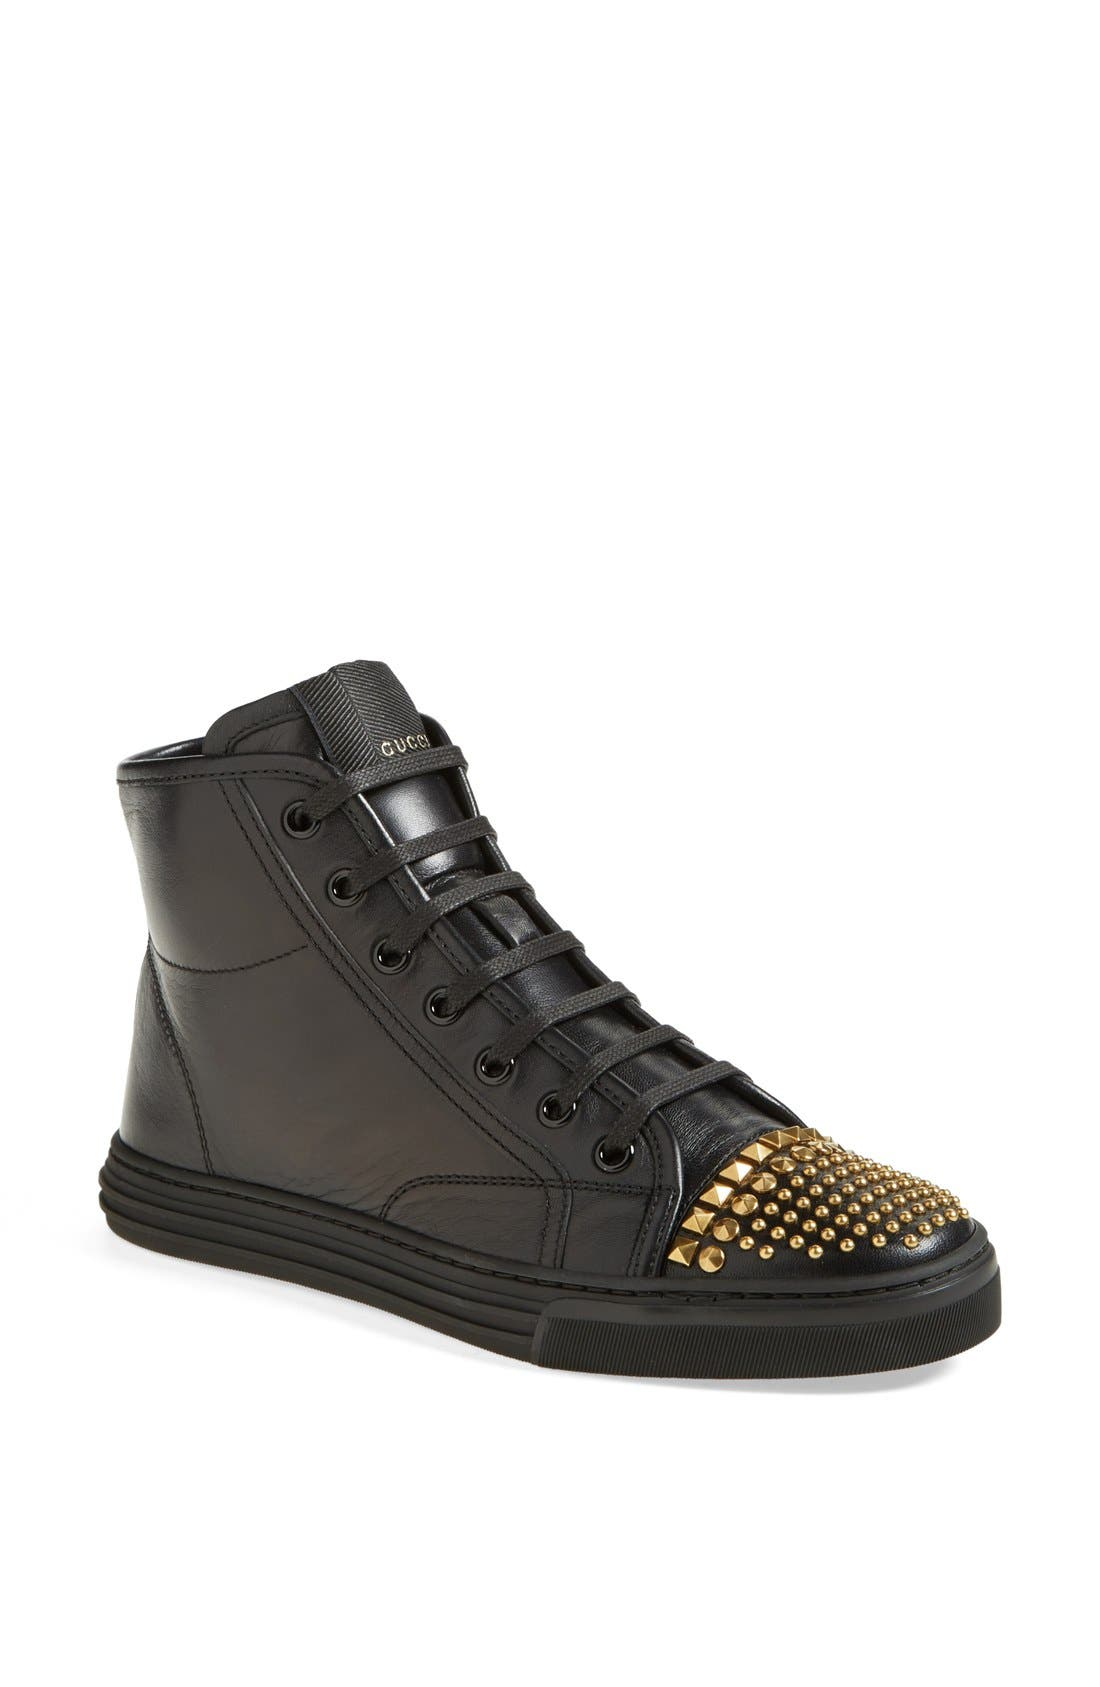 Main Image - Gucci 'California' Studded Sneaker (Women)